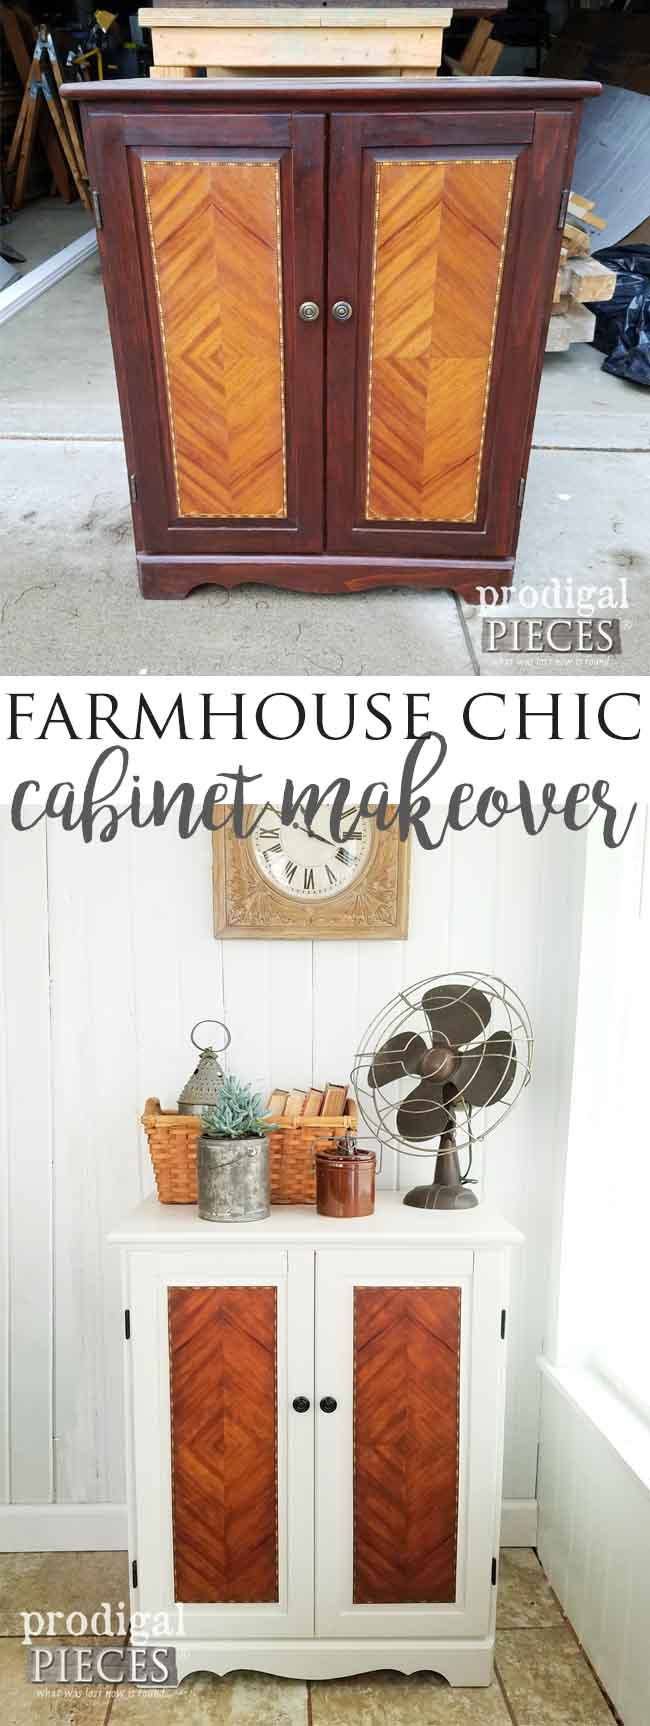 Get the Modern Farmhouse Chic Look with these Simple Steps Outlined by Prodigal Pieces | prodigalpieces.com